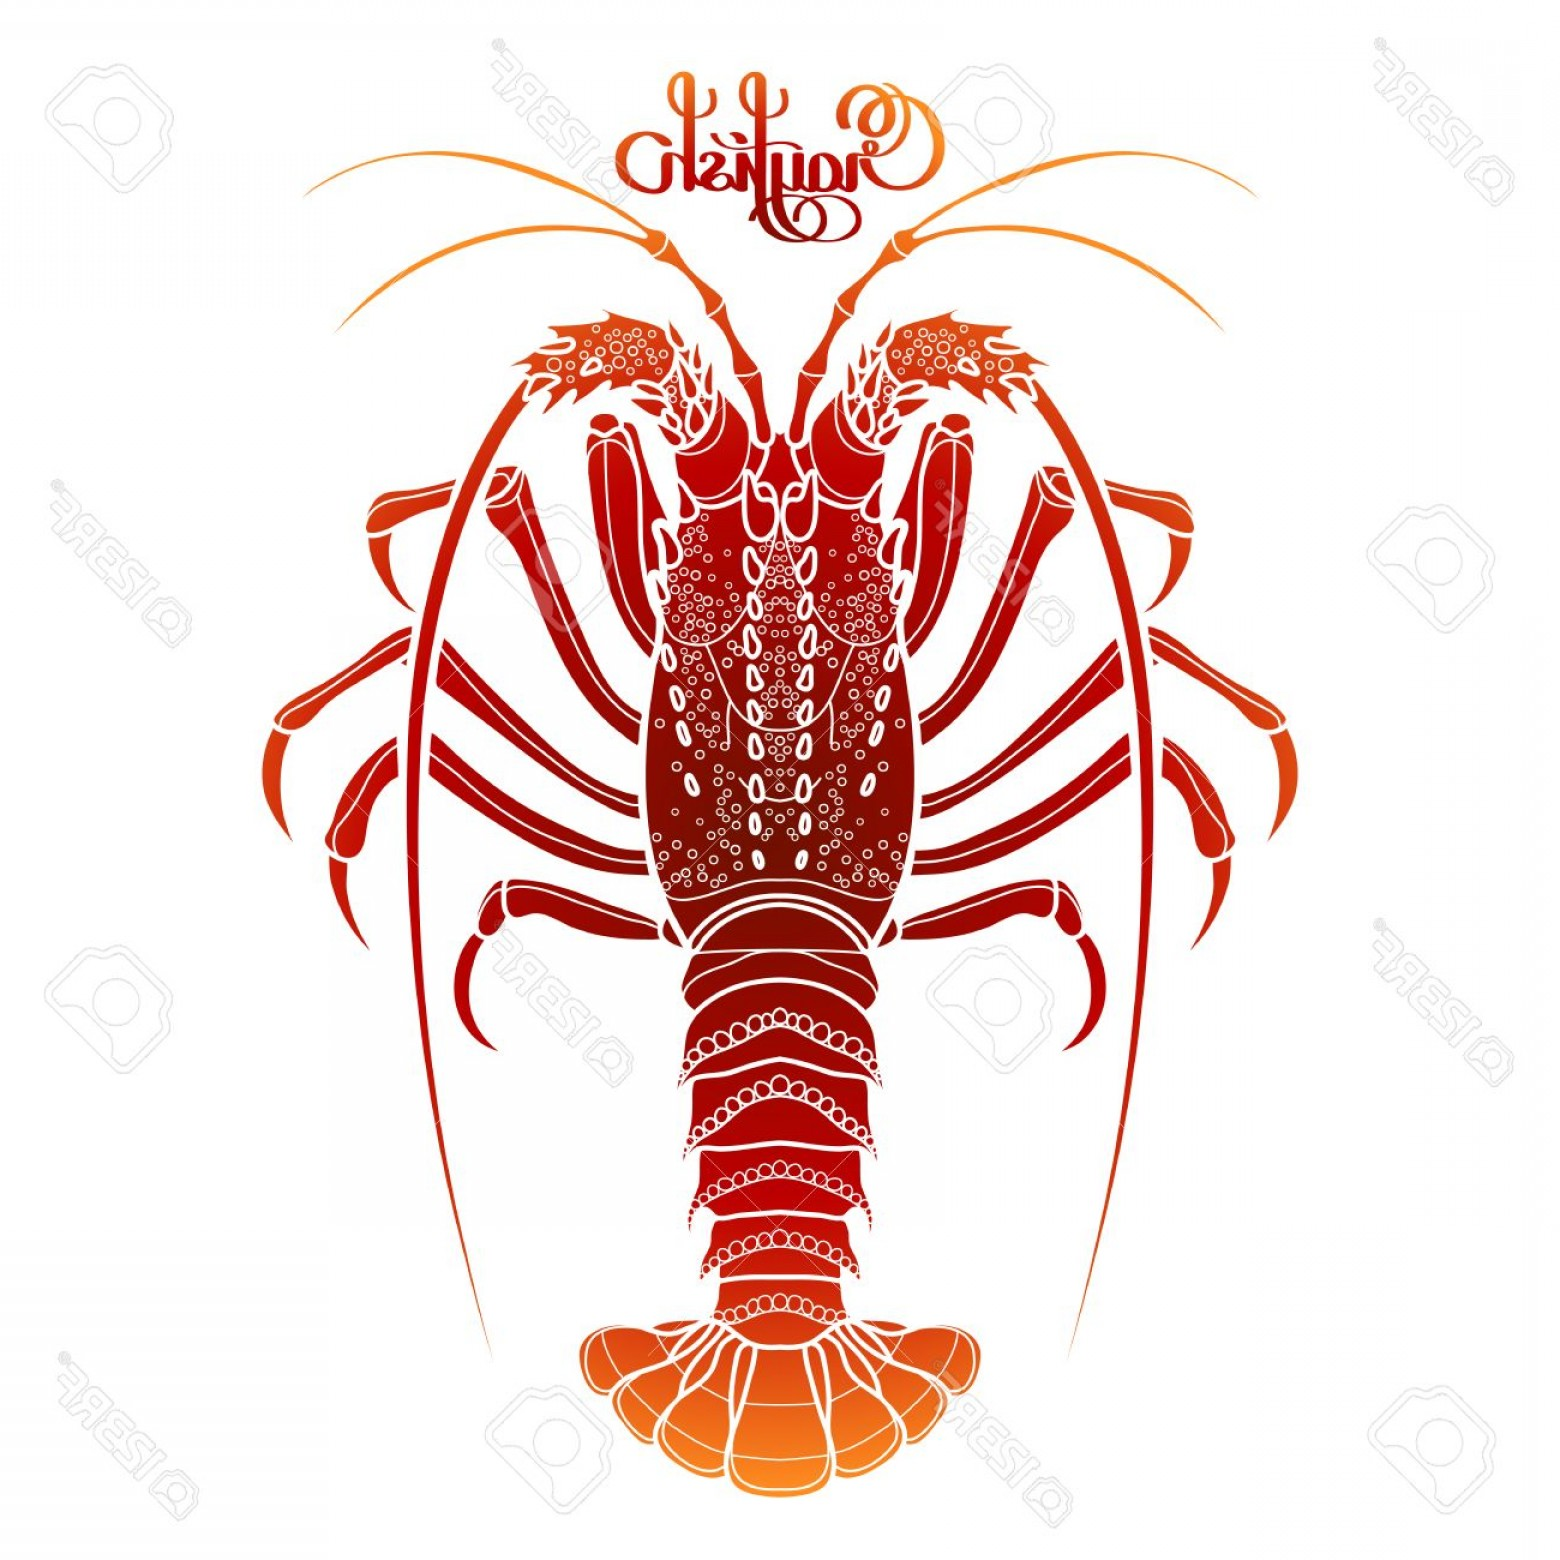 Lobster Clip Art Vector: Photostock Vector Graphic Vector Crayfish Drawn In Line Art Style Spiny Or Rocky Lobster Sea And Ocean Creature Isolat